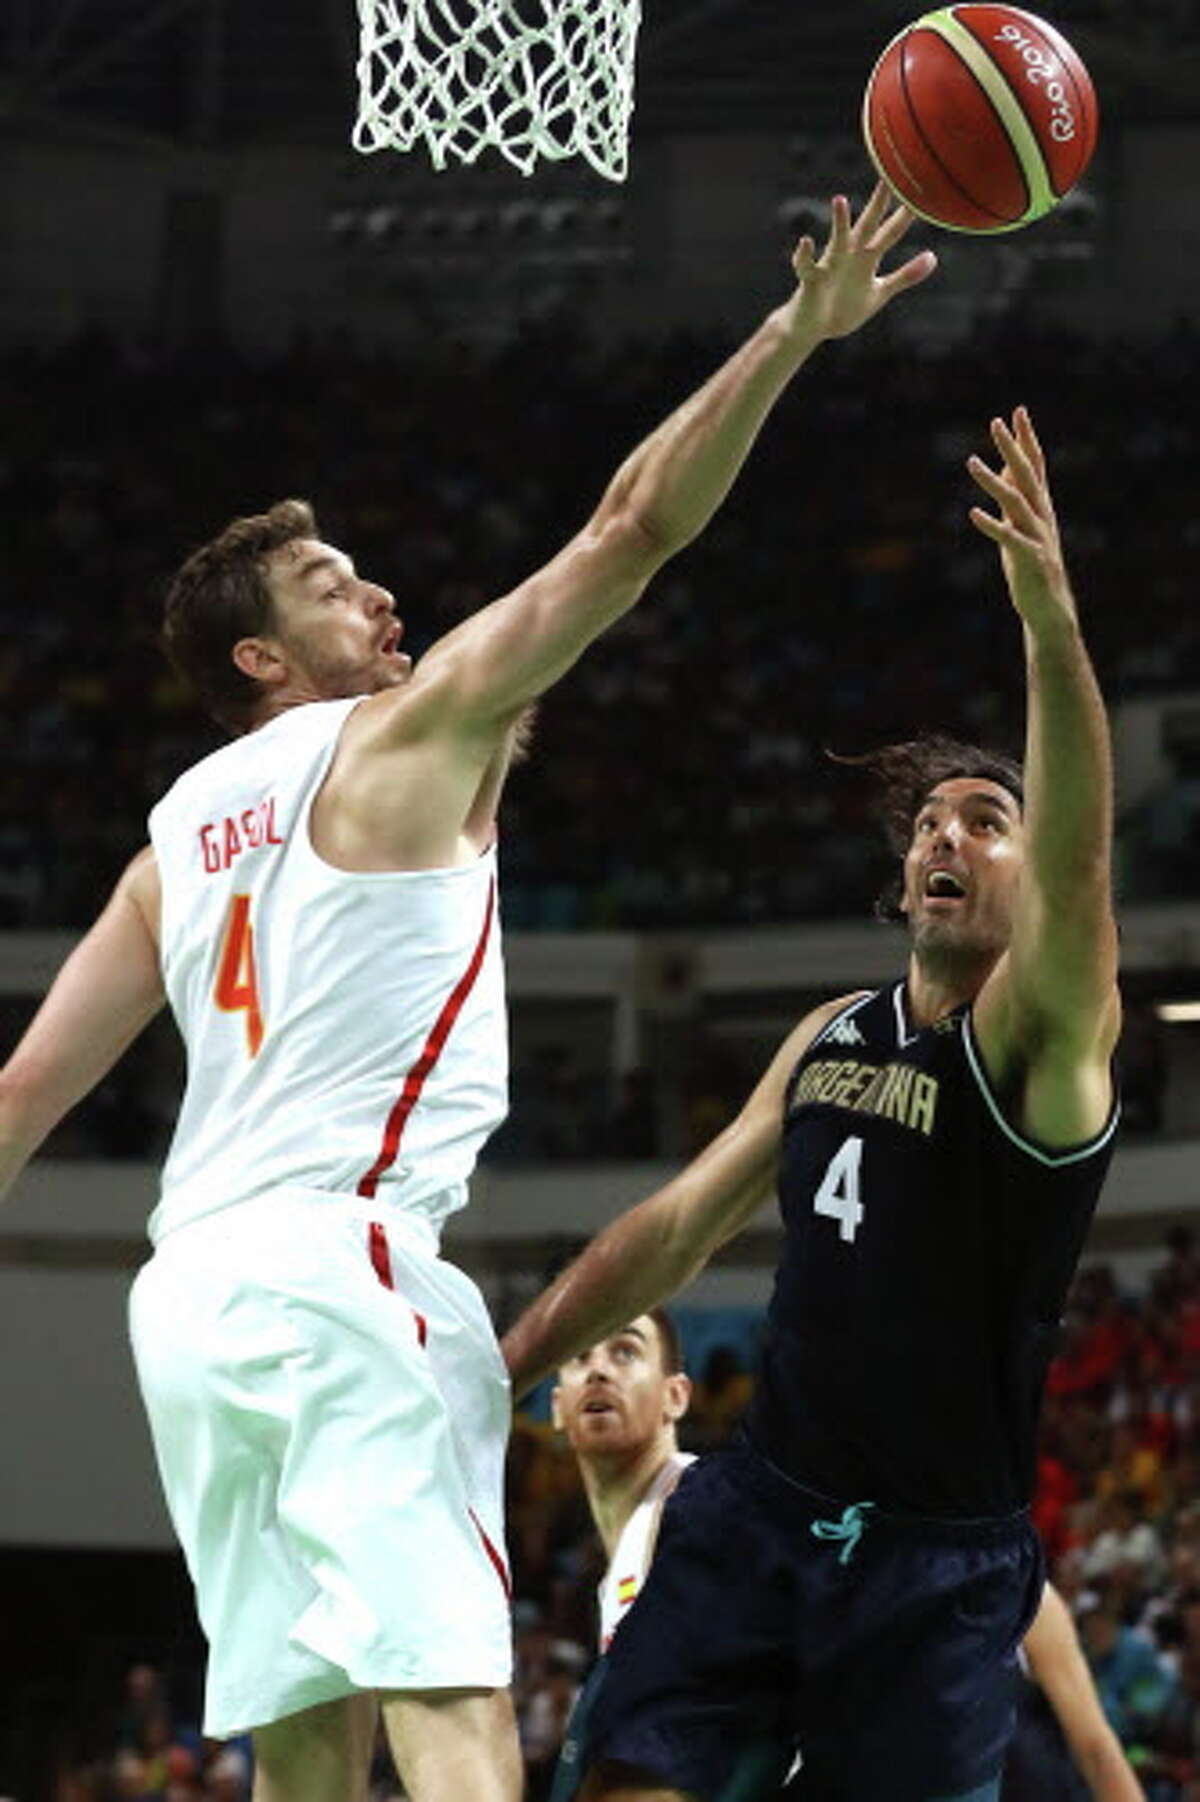 RIO DE JANEIRO, BRAZIL - AUGUST 15: Luis Scola #4 of Argentina shoots against Pau Gasol #4 of Spain during a Men's Basketball Preliminary Round Group B game between Spain and Argentina on Day 10 of the Rio 2016 Olympic Games at Carioca Arena 1 on August 15, 2016 in Rio de Janeiro, Brazil. (Photo by Sean M. Haffey/Getty Images)